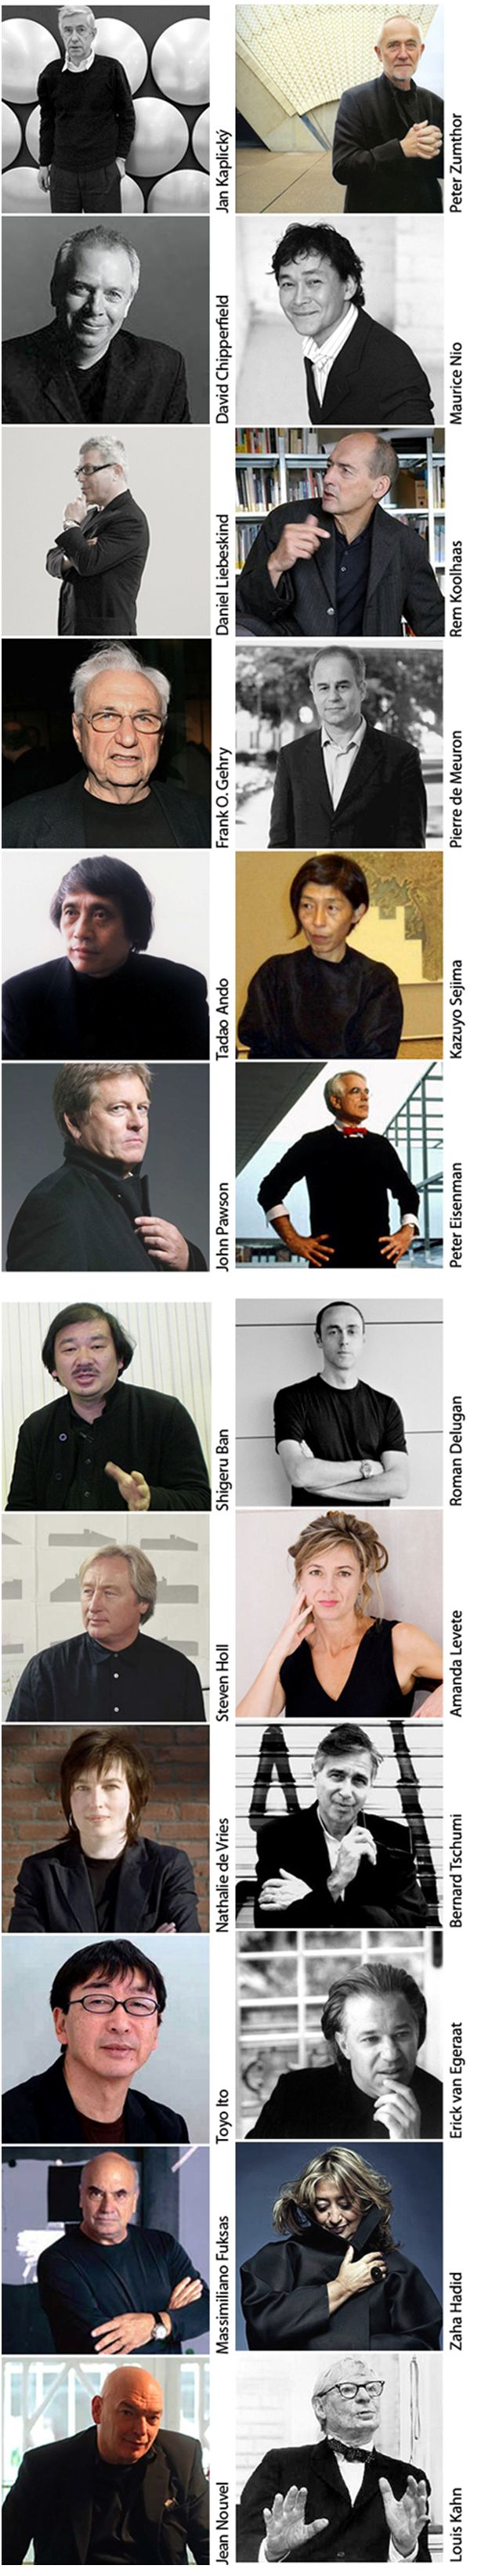 "ARCHITECT'S DRESS CODE - ""Apart from their dress code, the other similarities among the male architects are either bald or balding""   hahah, loove :)"